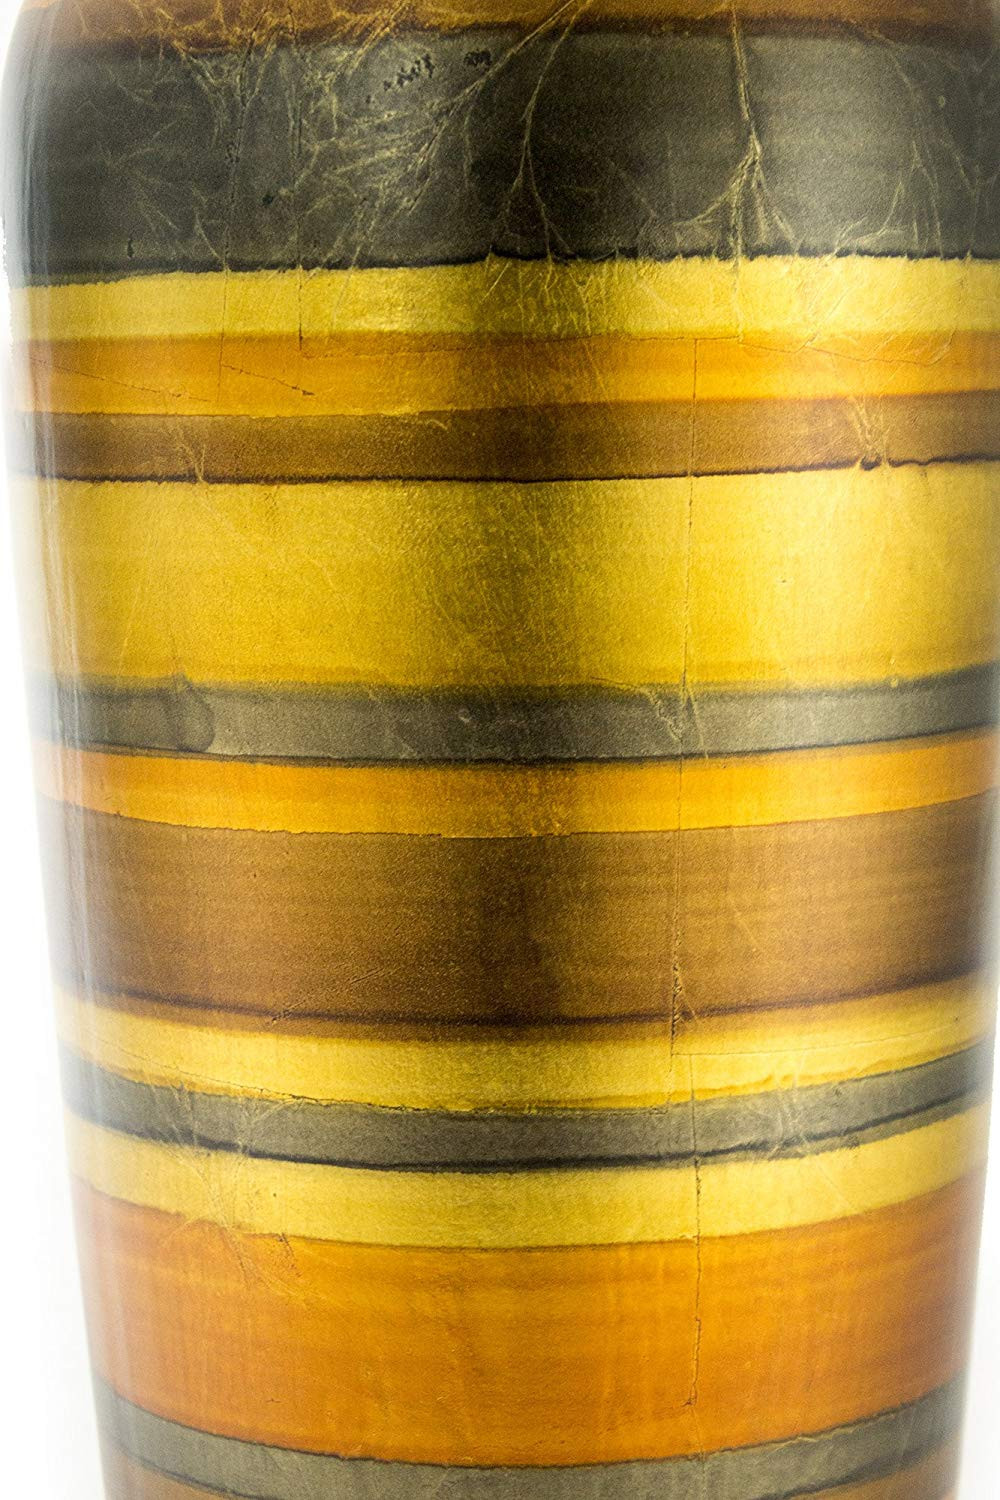 spun bamboo vase of amazon com heather ann creations stripe floor vase 20 inches throughout amazon com heather ann creations stripe floor vase 20 inches ceramic water jug home kitchen